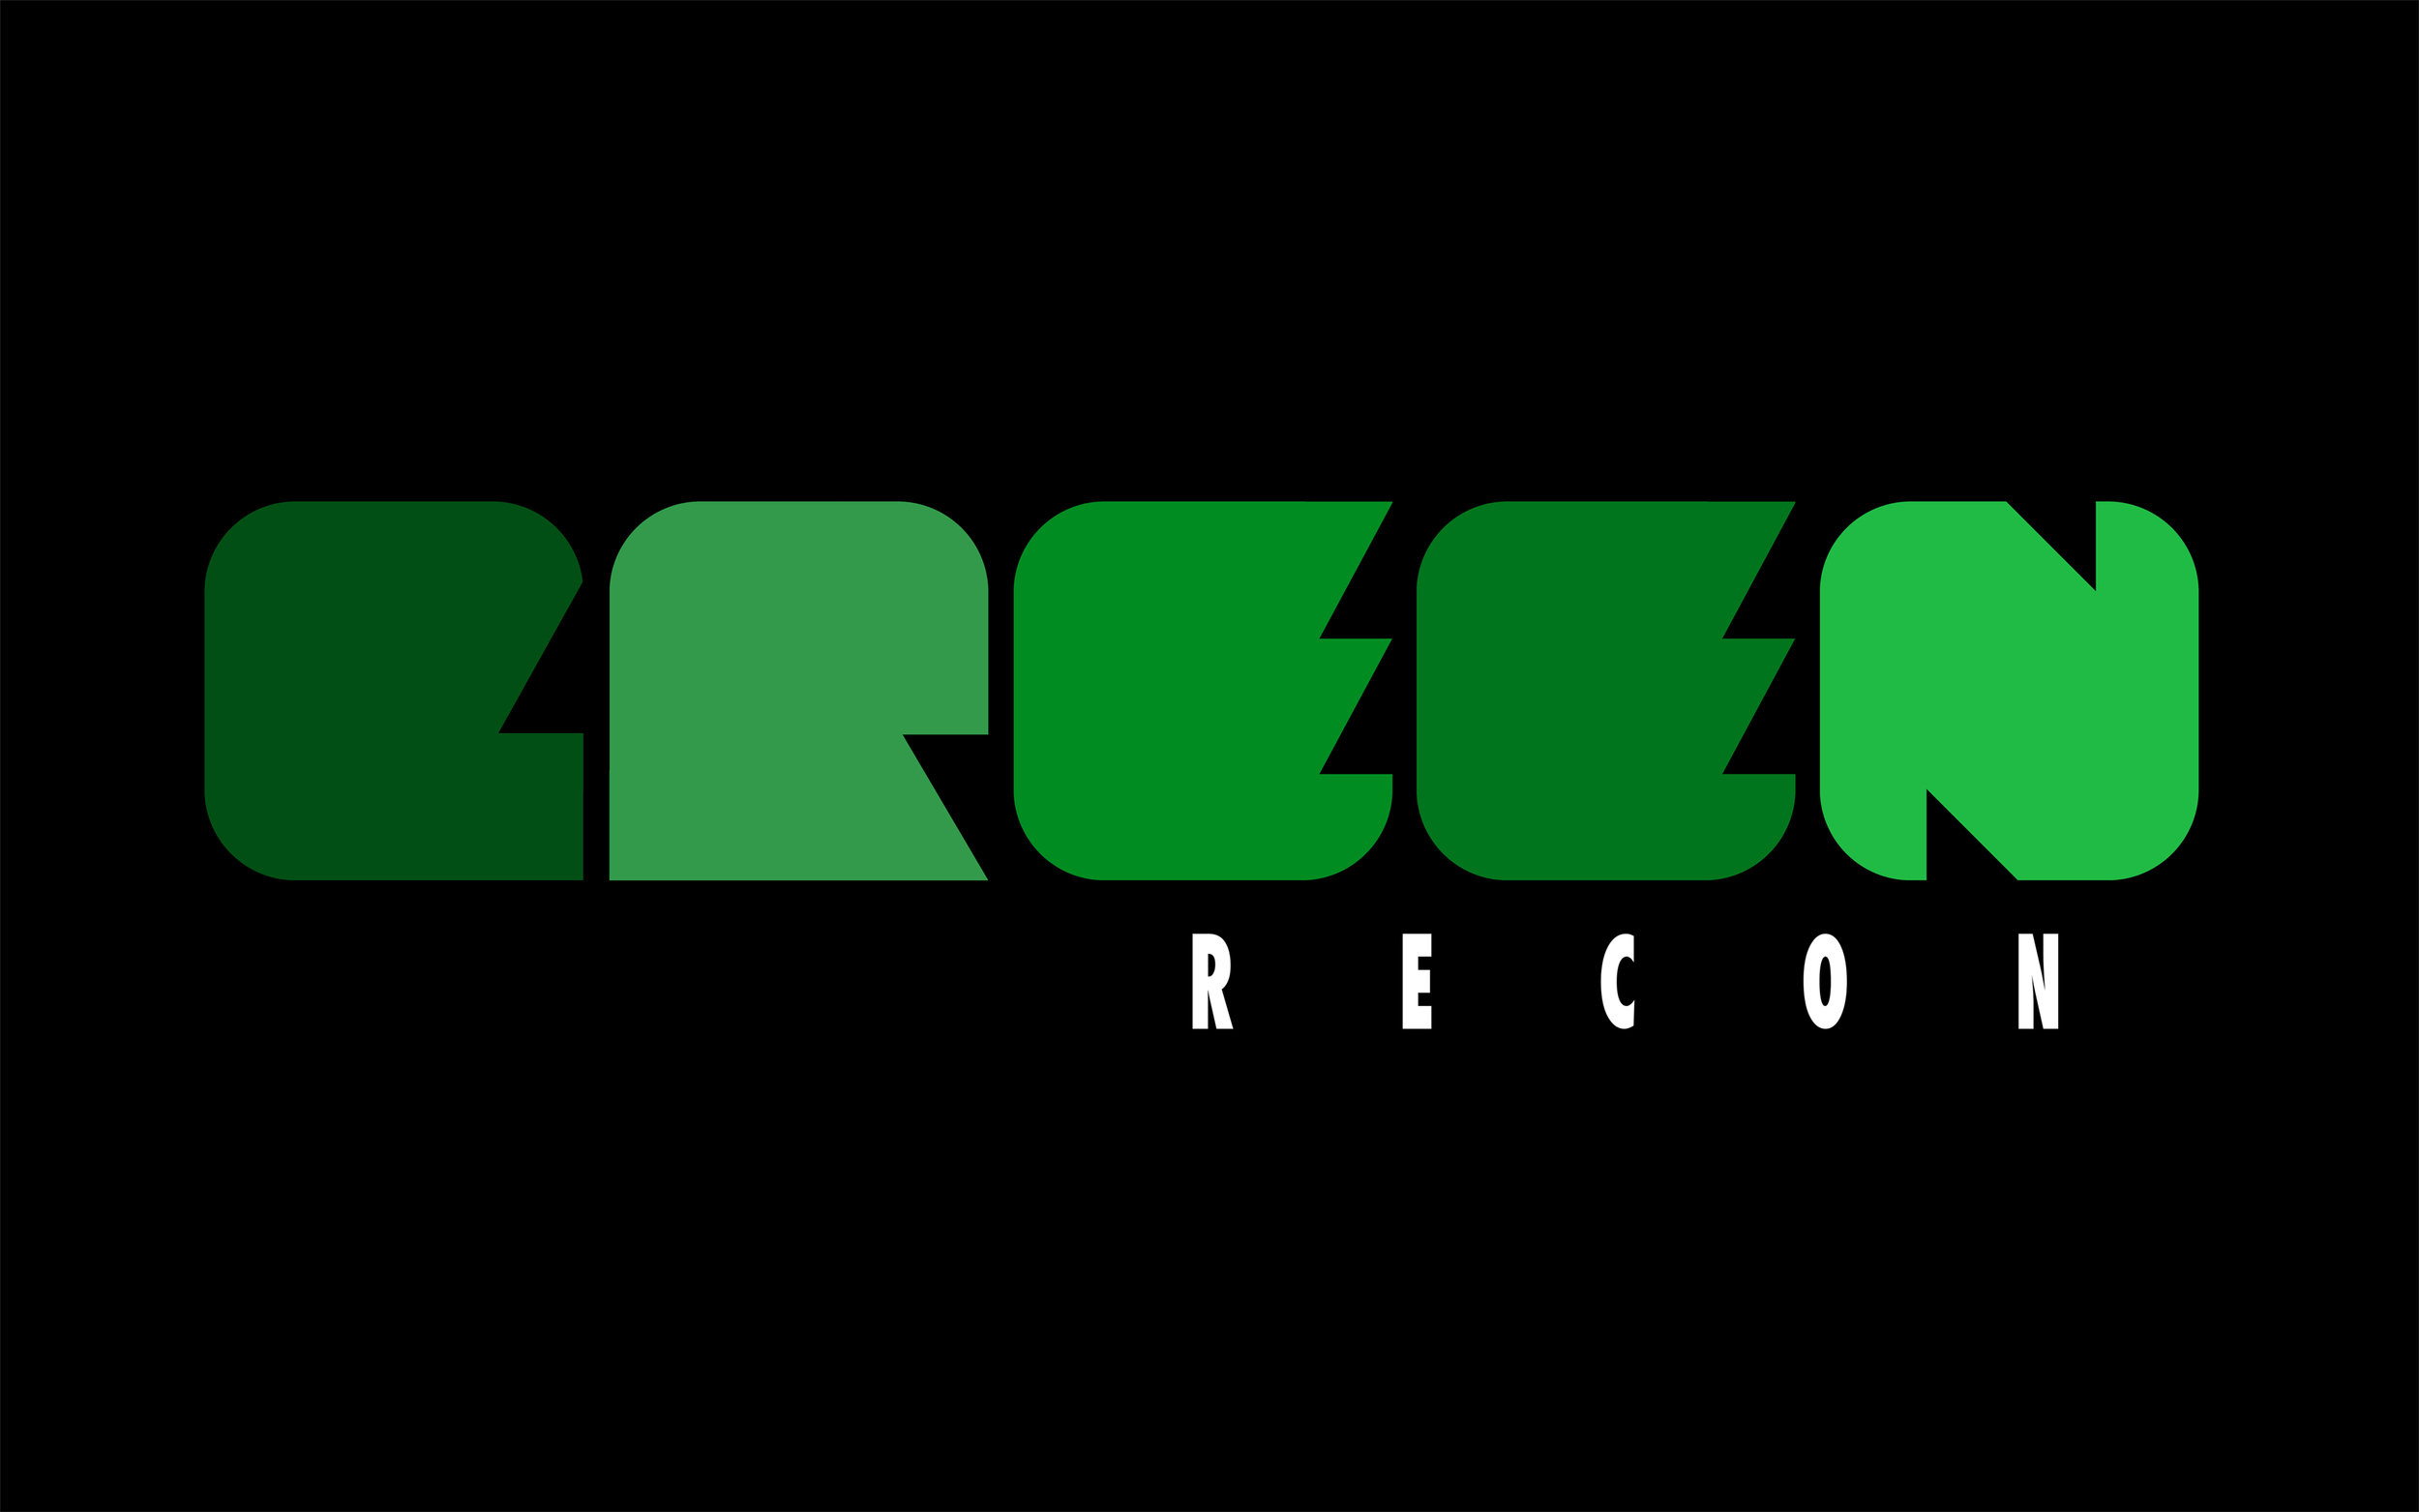 Green Recon Full Logo.jpg